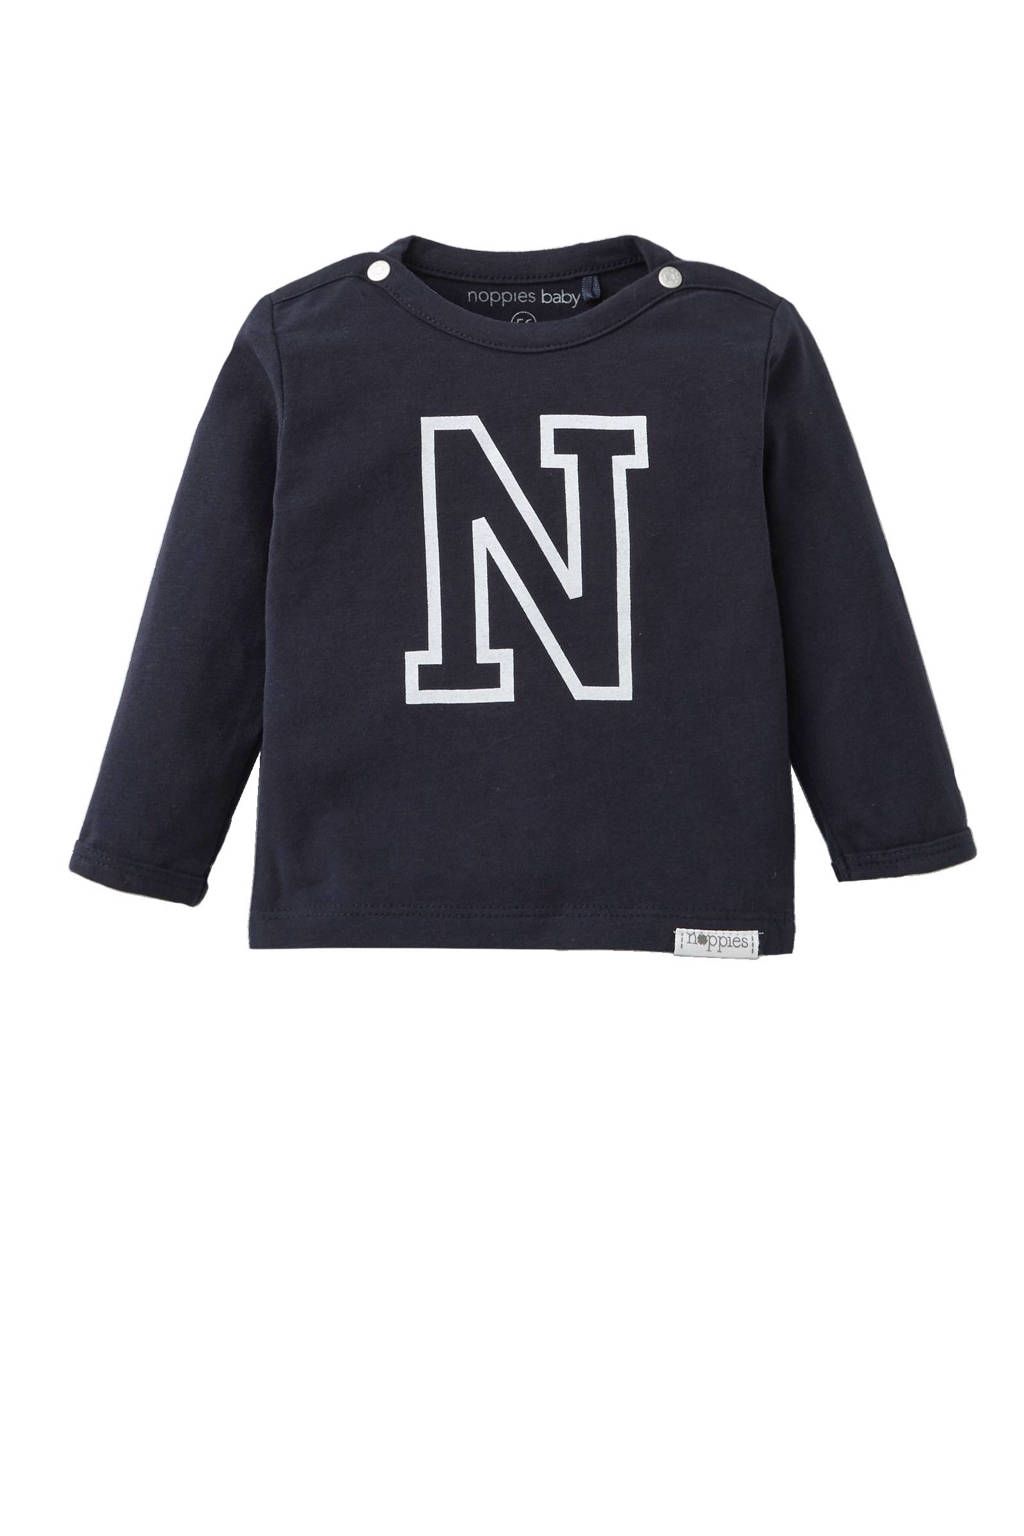 Noppies newborn baby longsleeve, Dark Blue